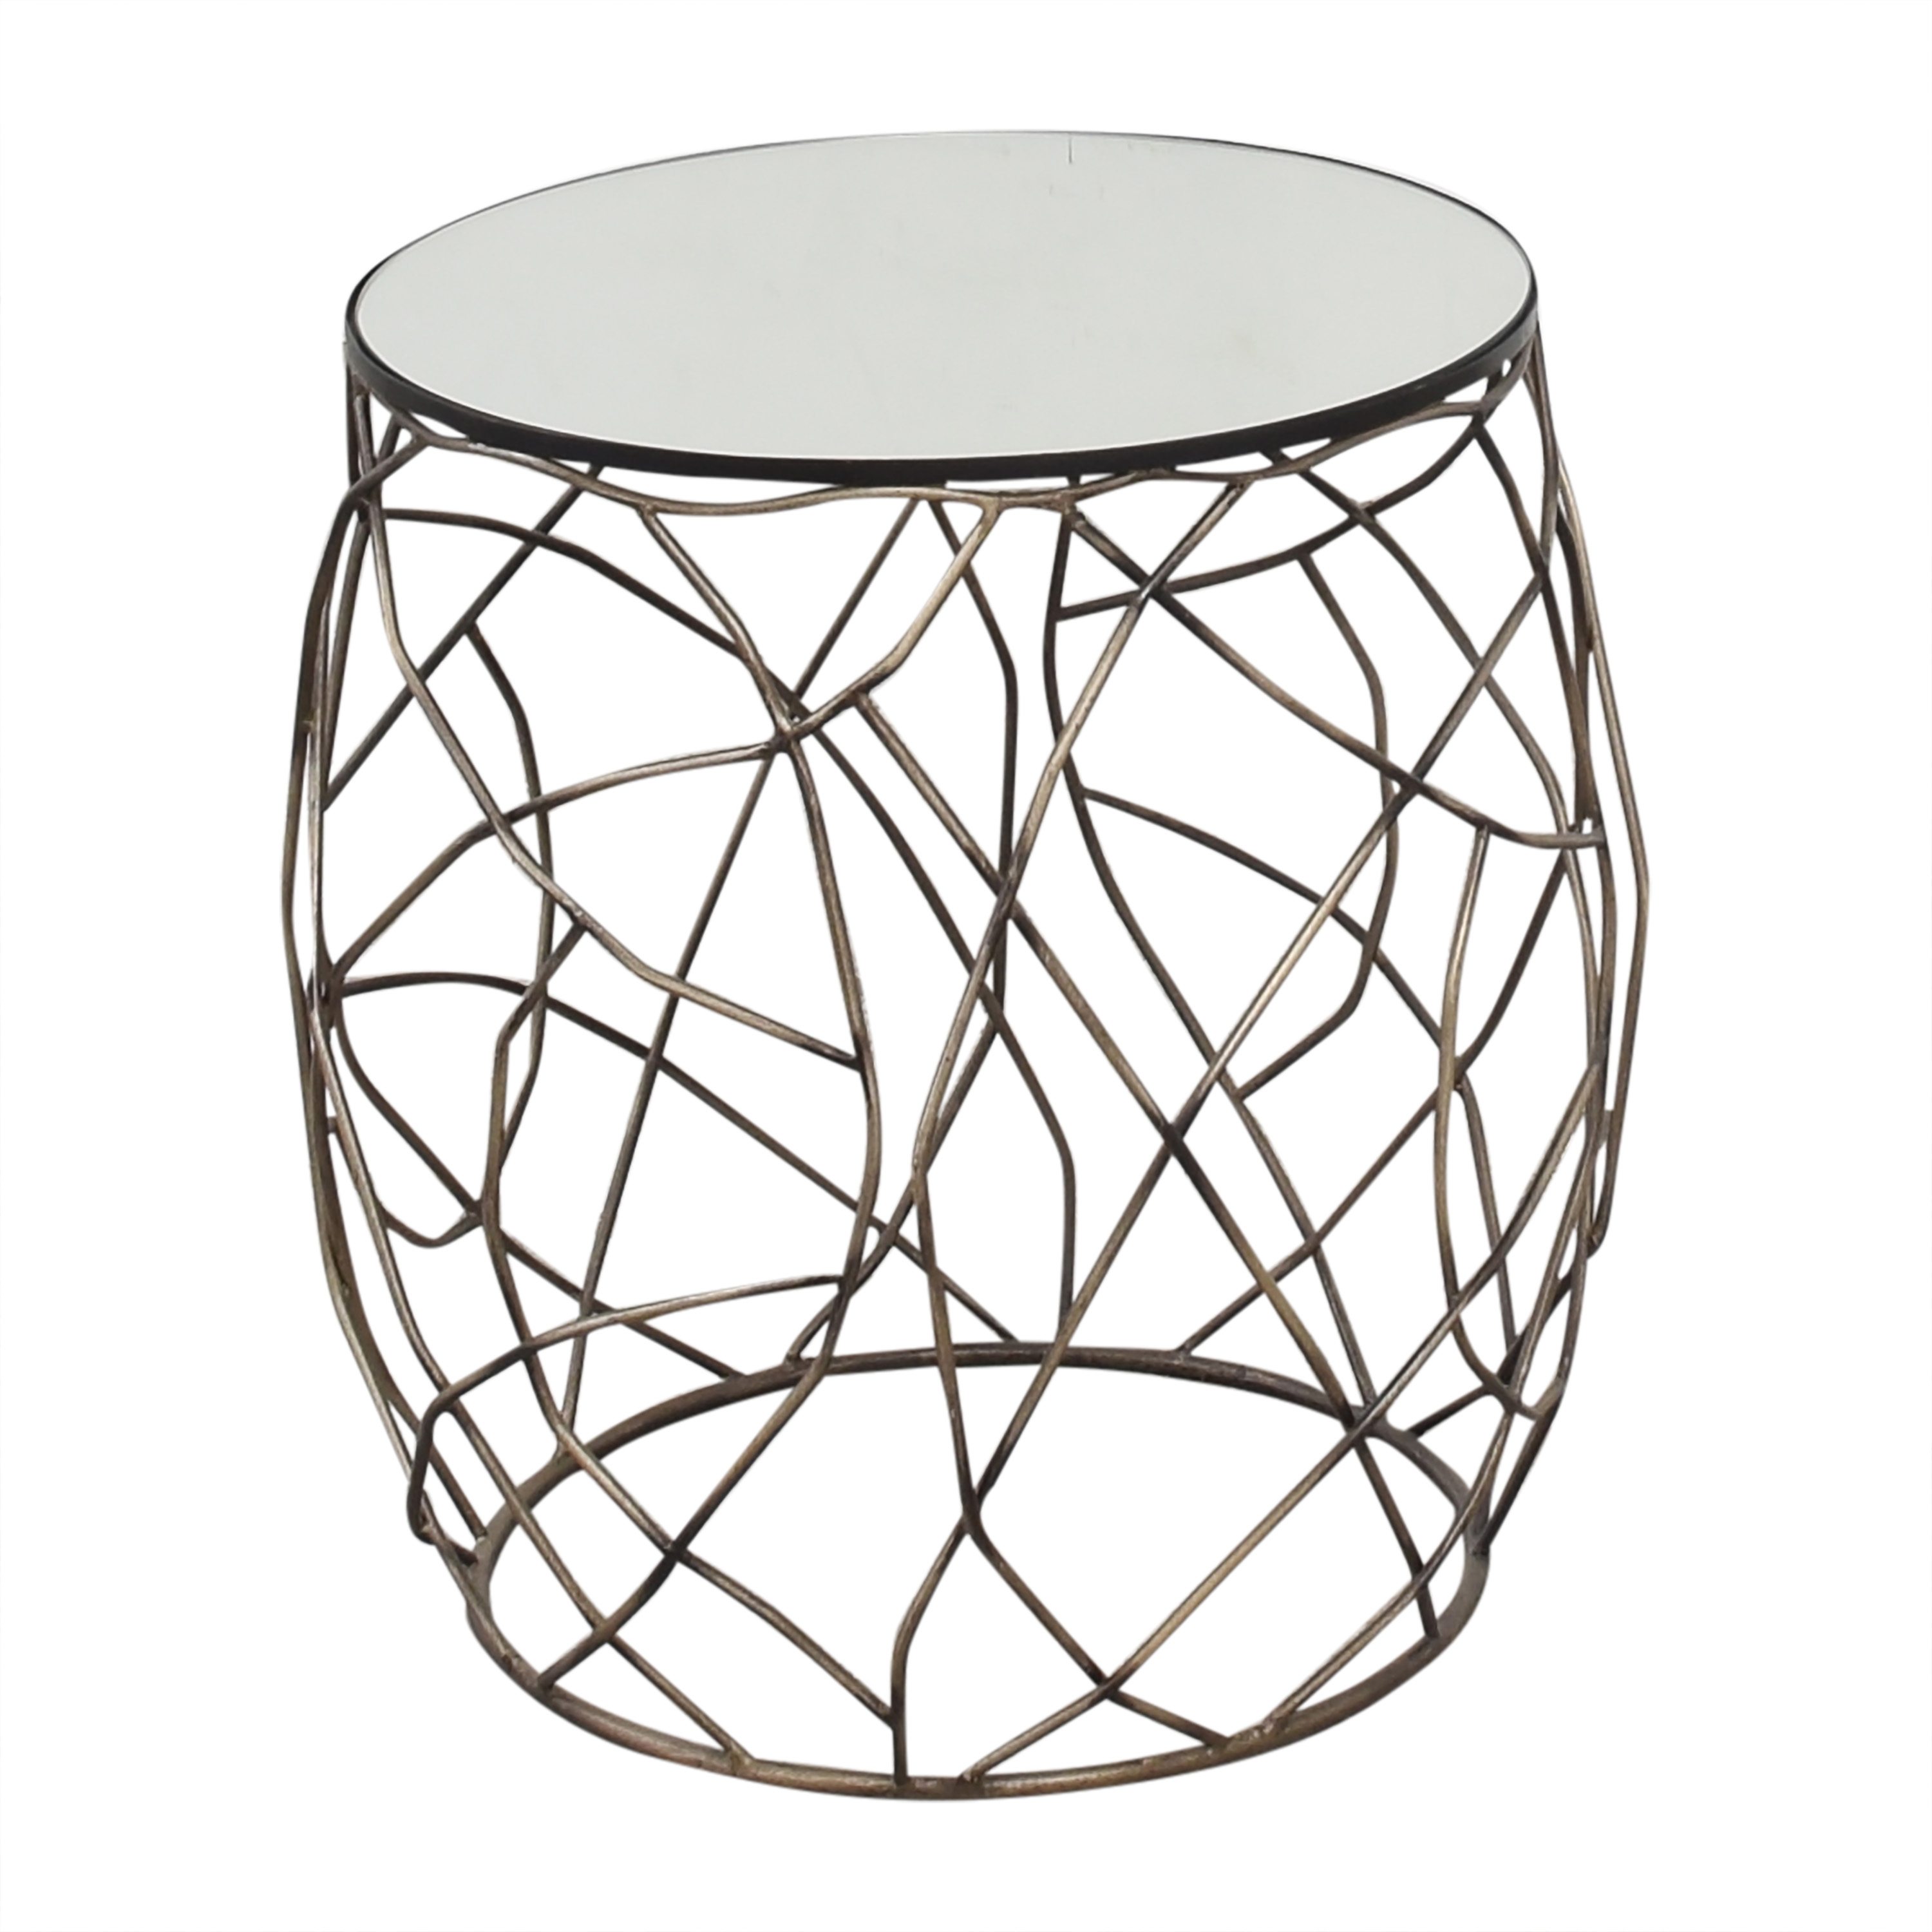 Horchow Horchow Rumi Openwork Side Table discount